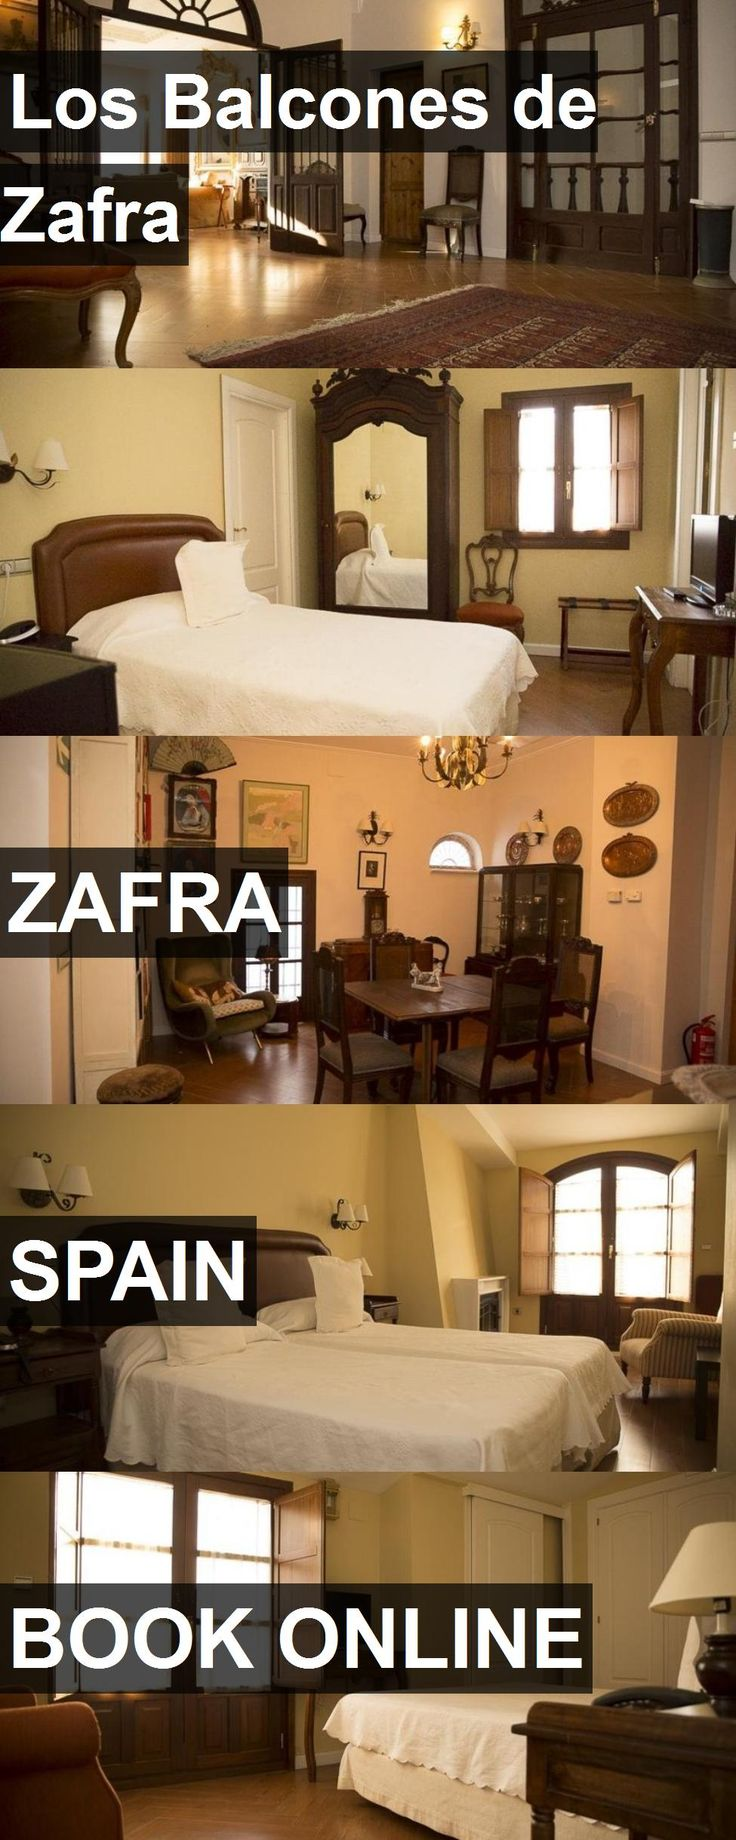 Hotel Los Balcones de Zafra in Zafra, Spain. For more information, photos, reviews and best prices please follow the link. #Spain #Zafra #travel #vacation #hotel